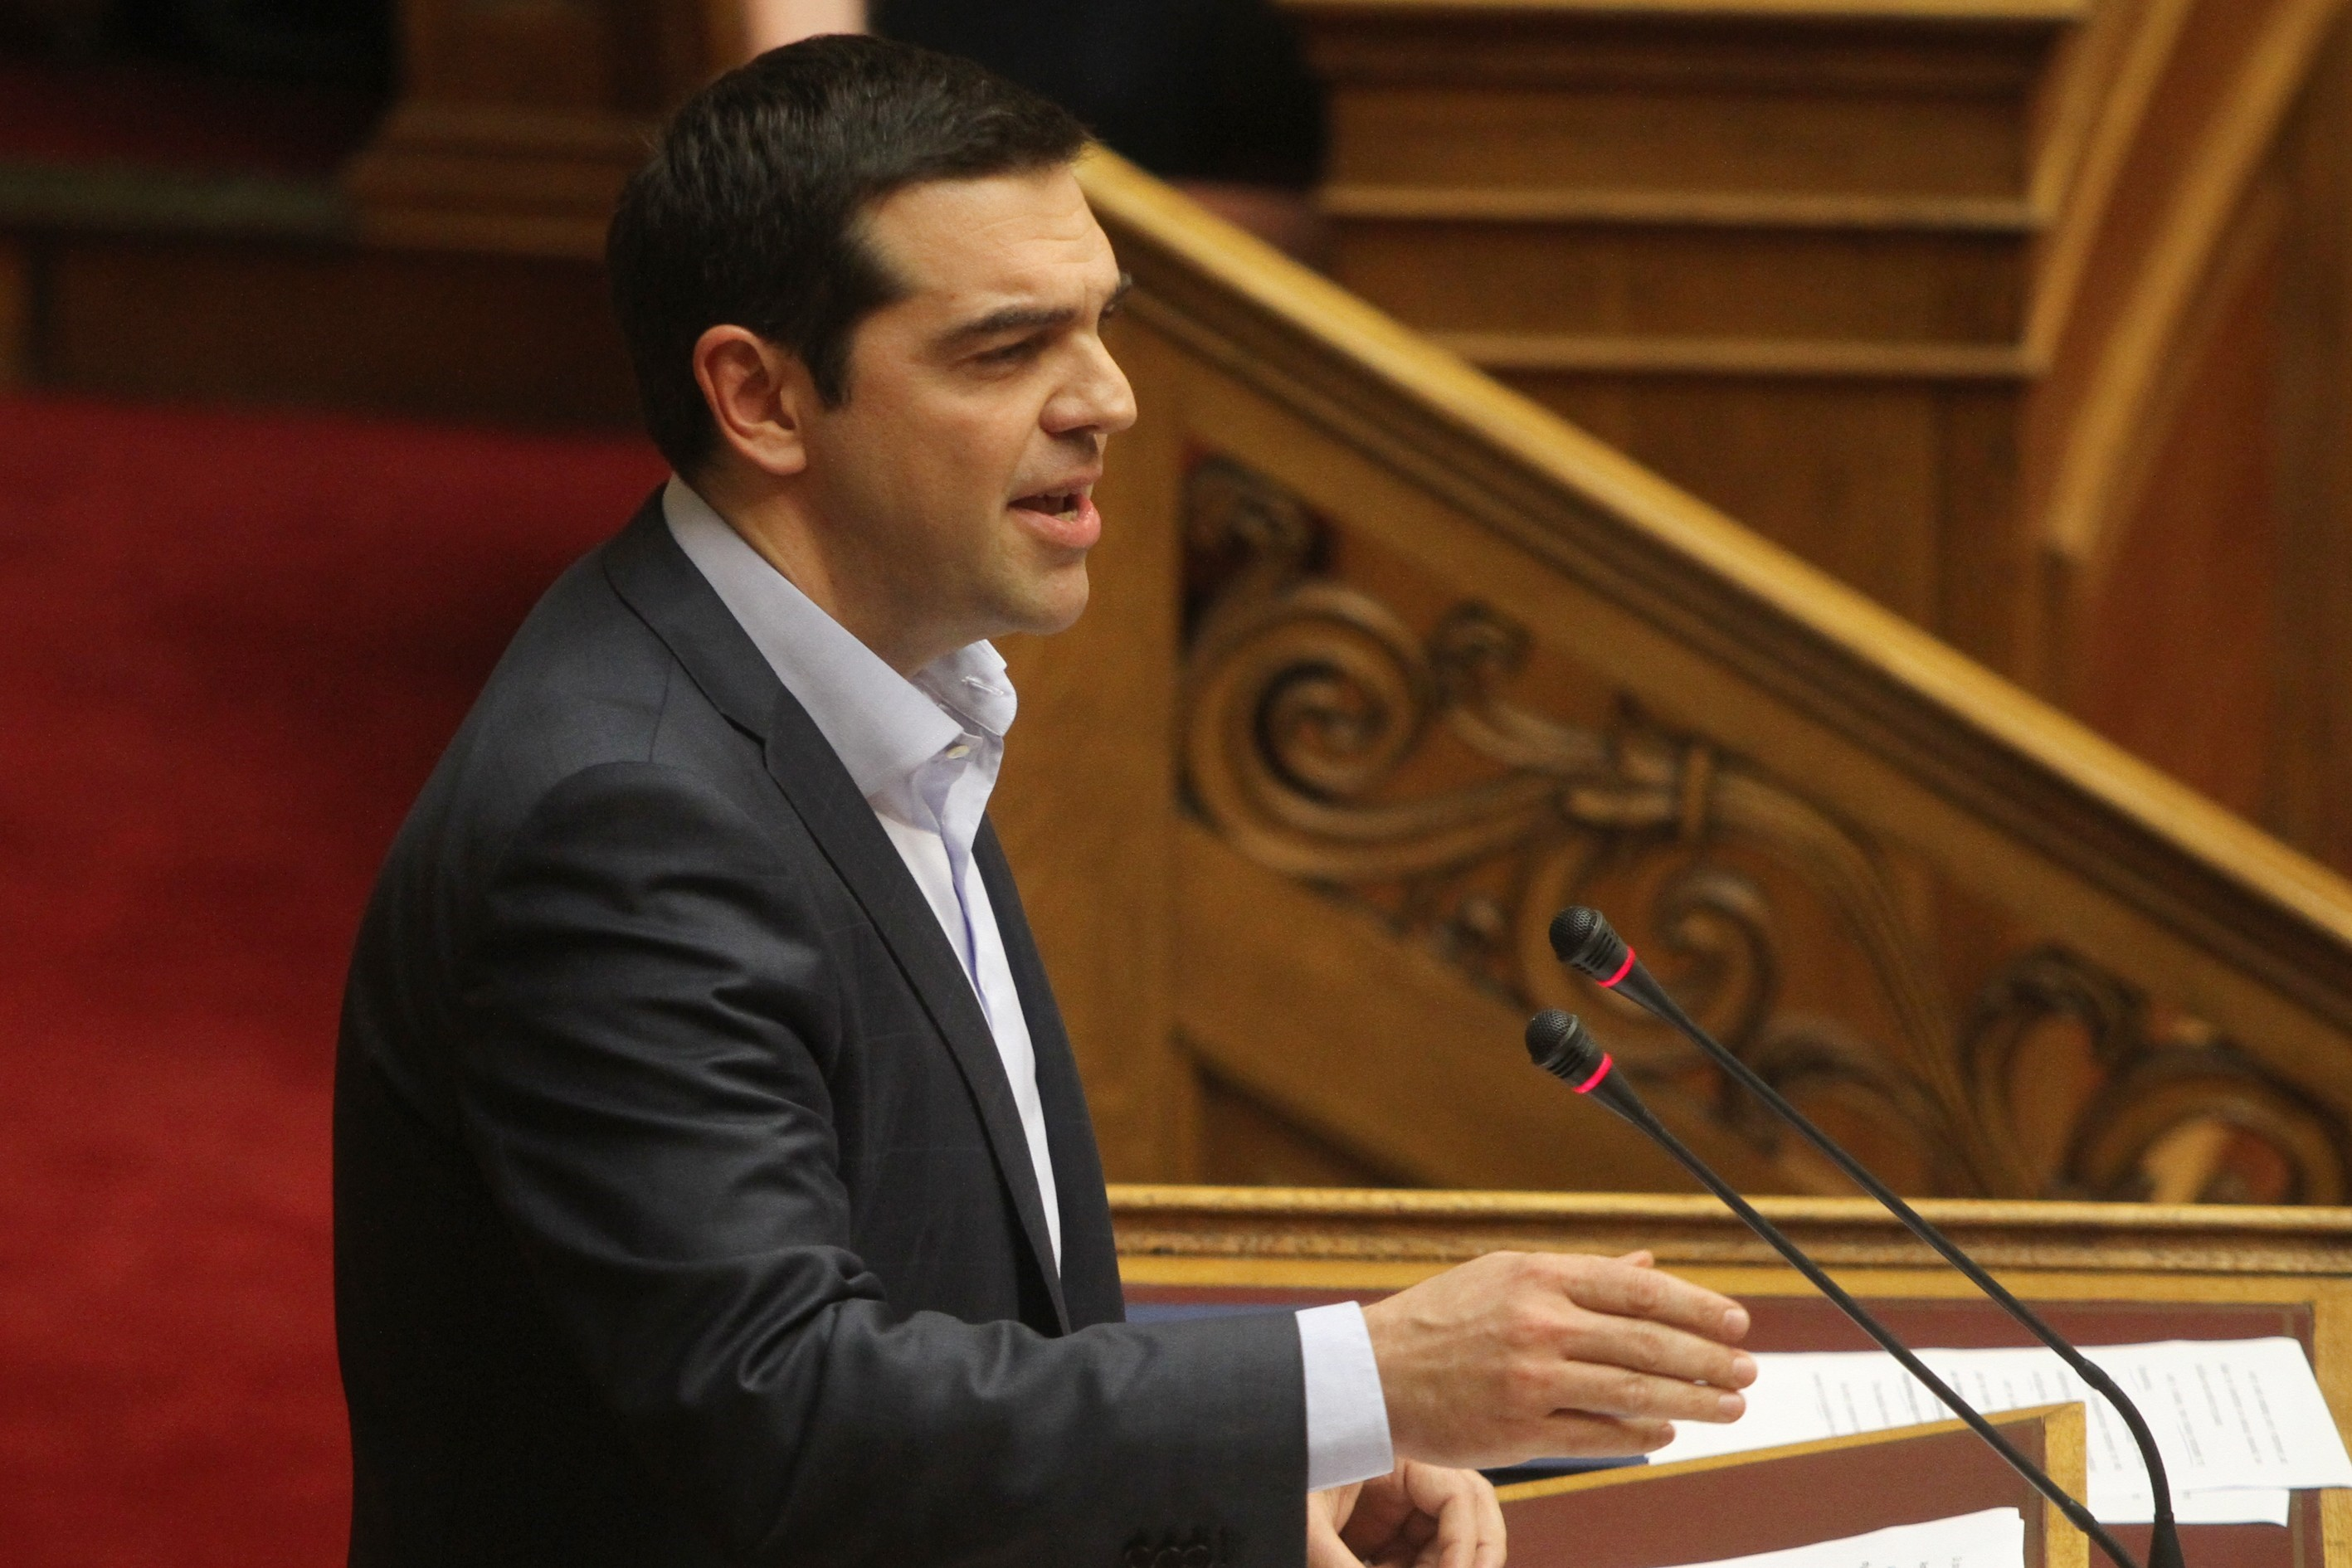 Greek Prime Minister Alexis Tsipras speaks at parliament in Athens